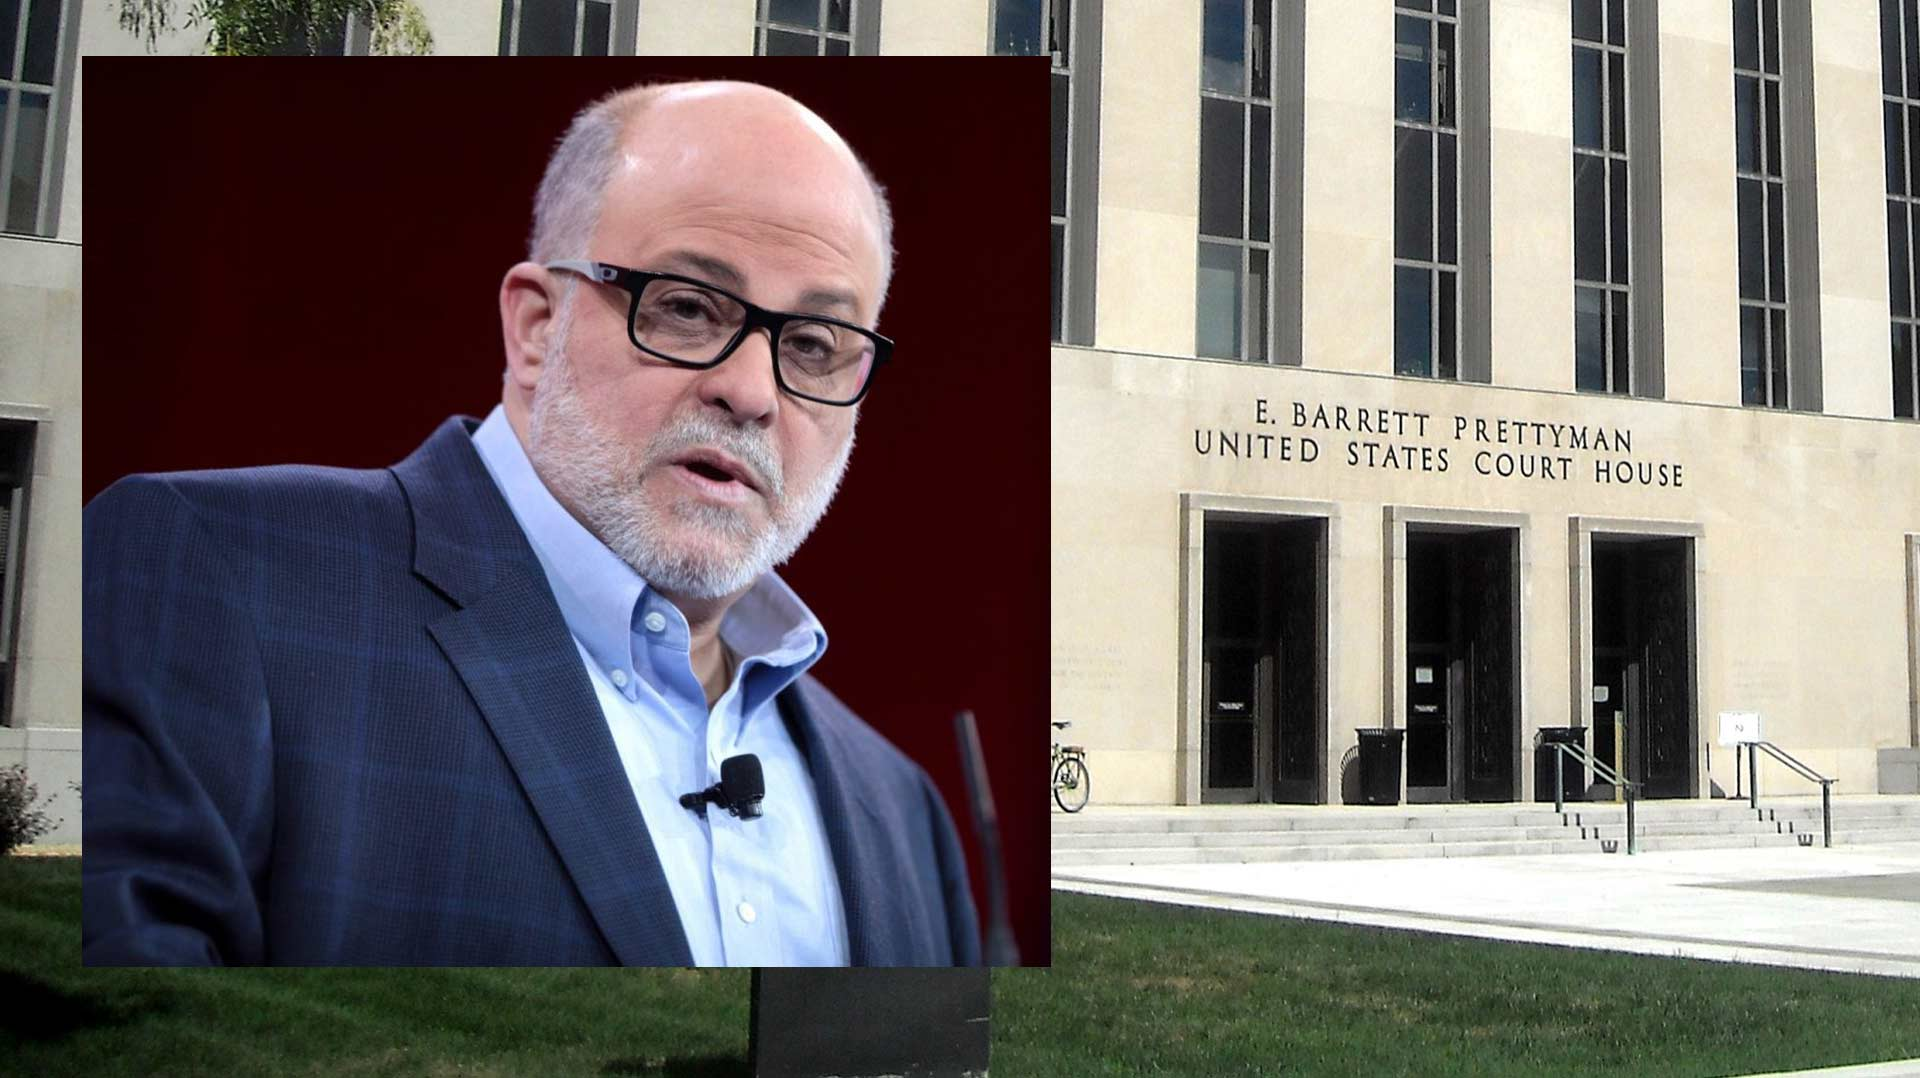 Watch Mark Levin with Sean Hannity Discussing FISA Court Abuses and Our Efforts to Uncover the Facts